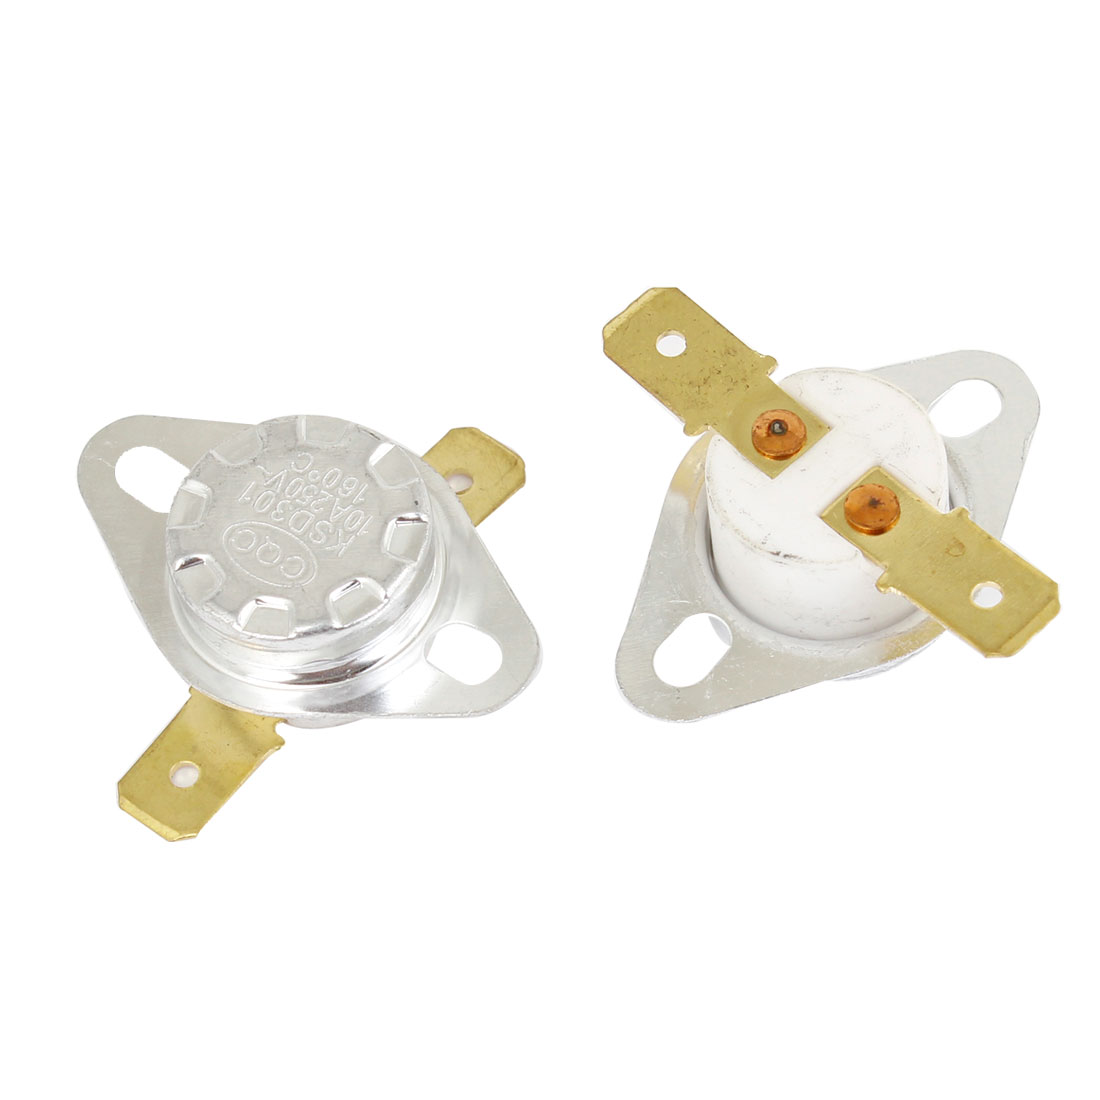 2 Pcs Replaceable 160C Temperature Control Switch Ceramic Thermostat